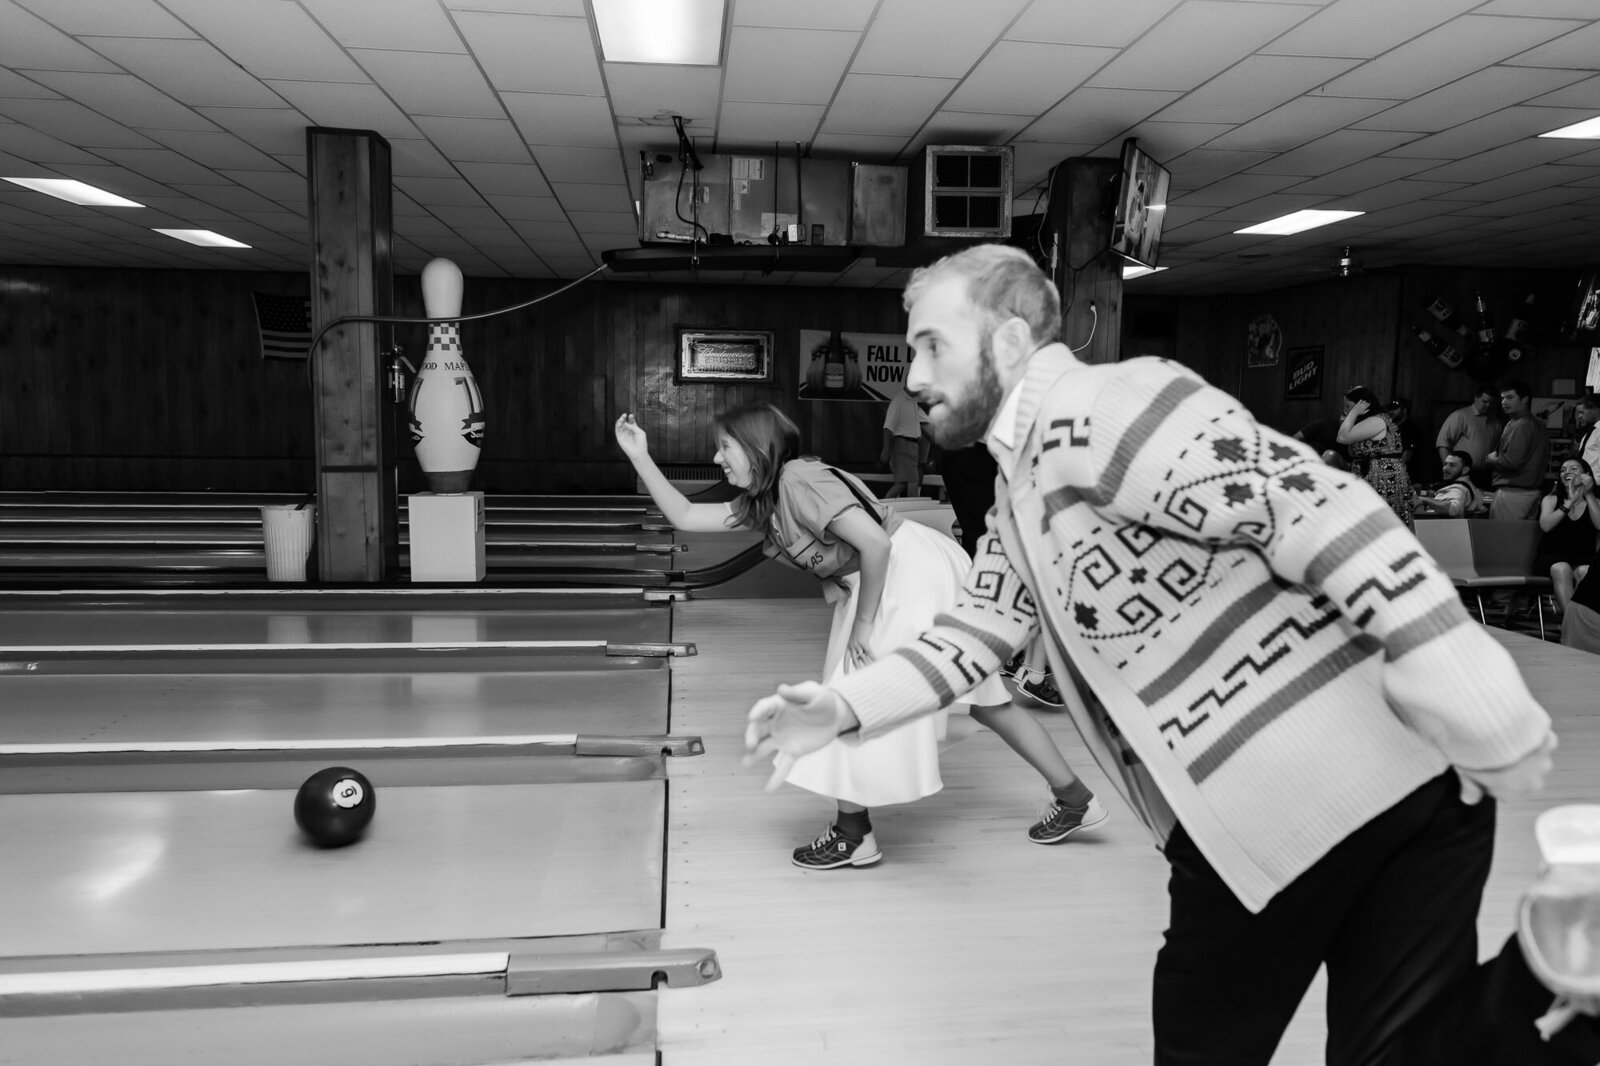 Bride and groom bowling at their nontraditional bowling wedding in St. Louis